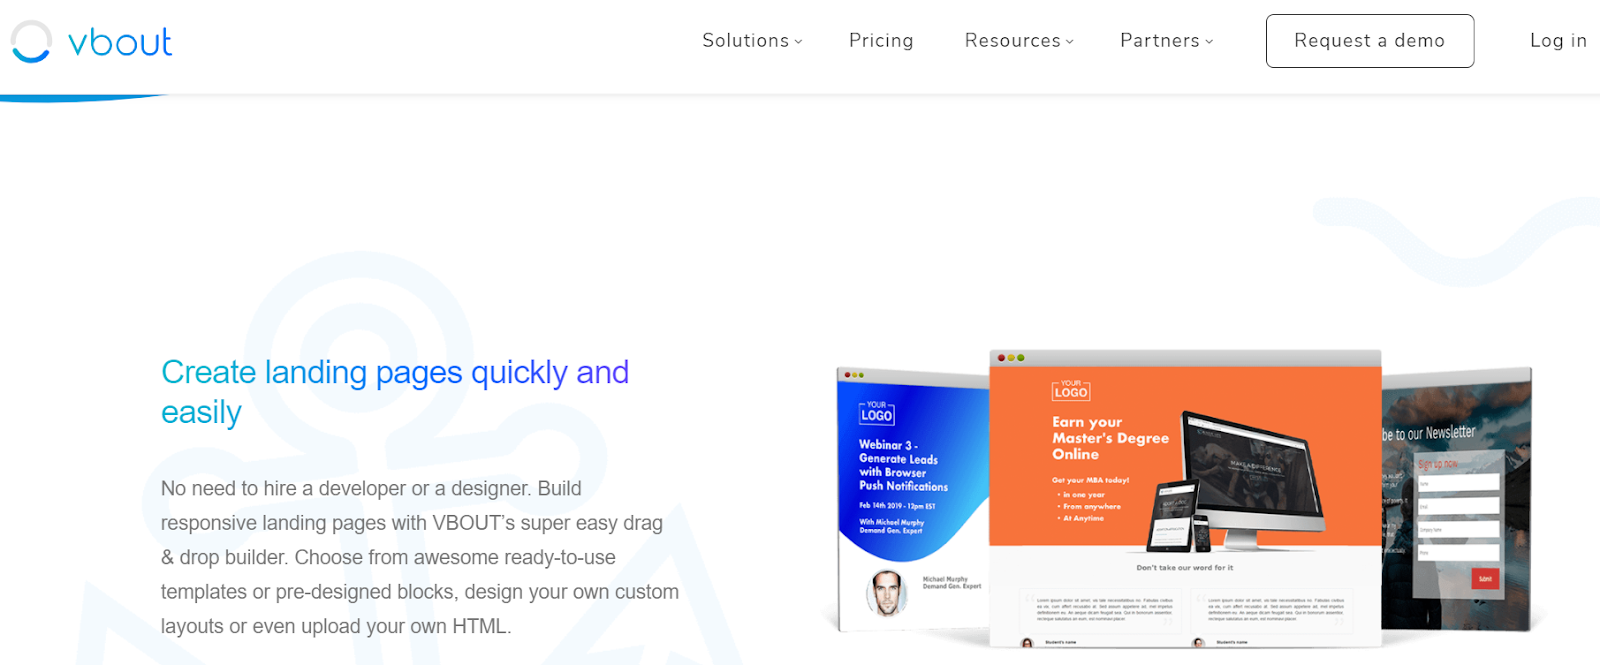 VBOUT's landing page builder